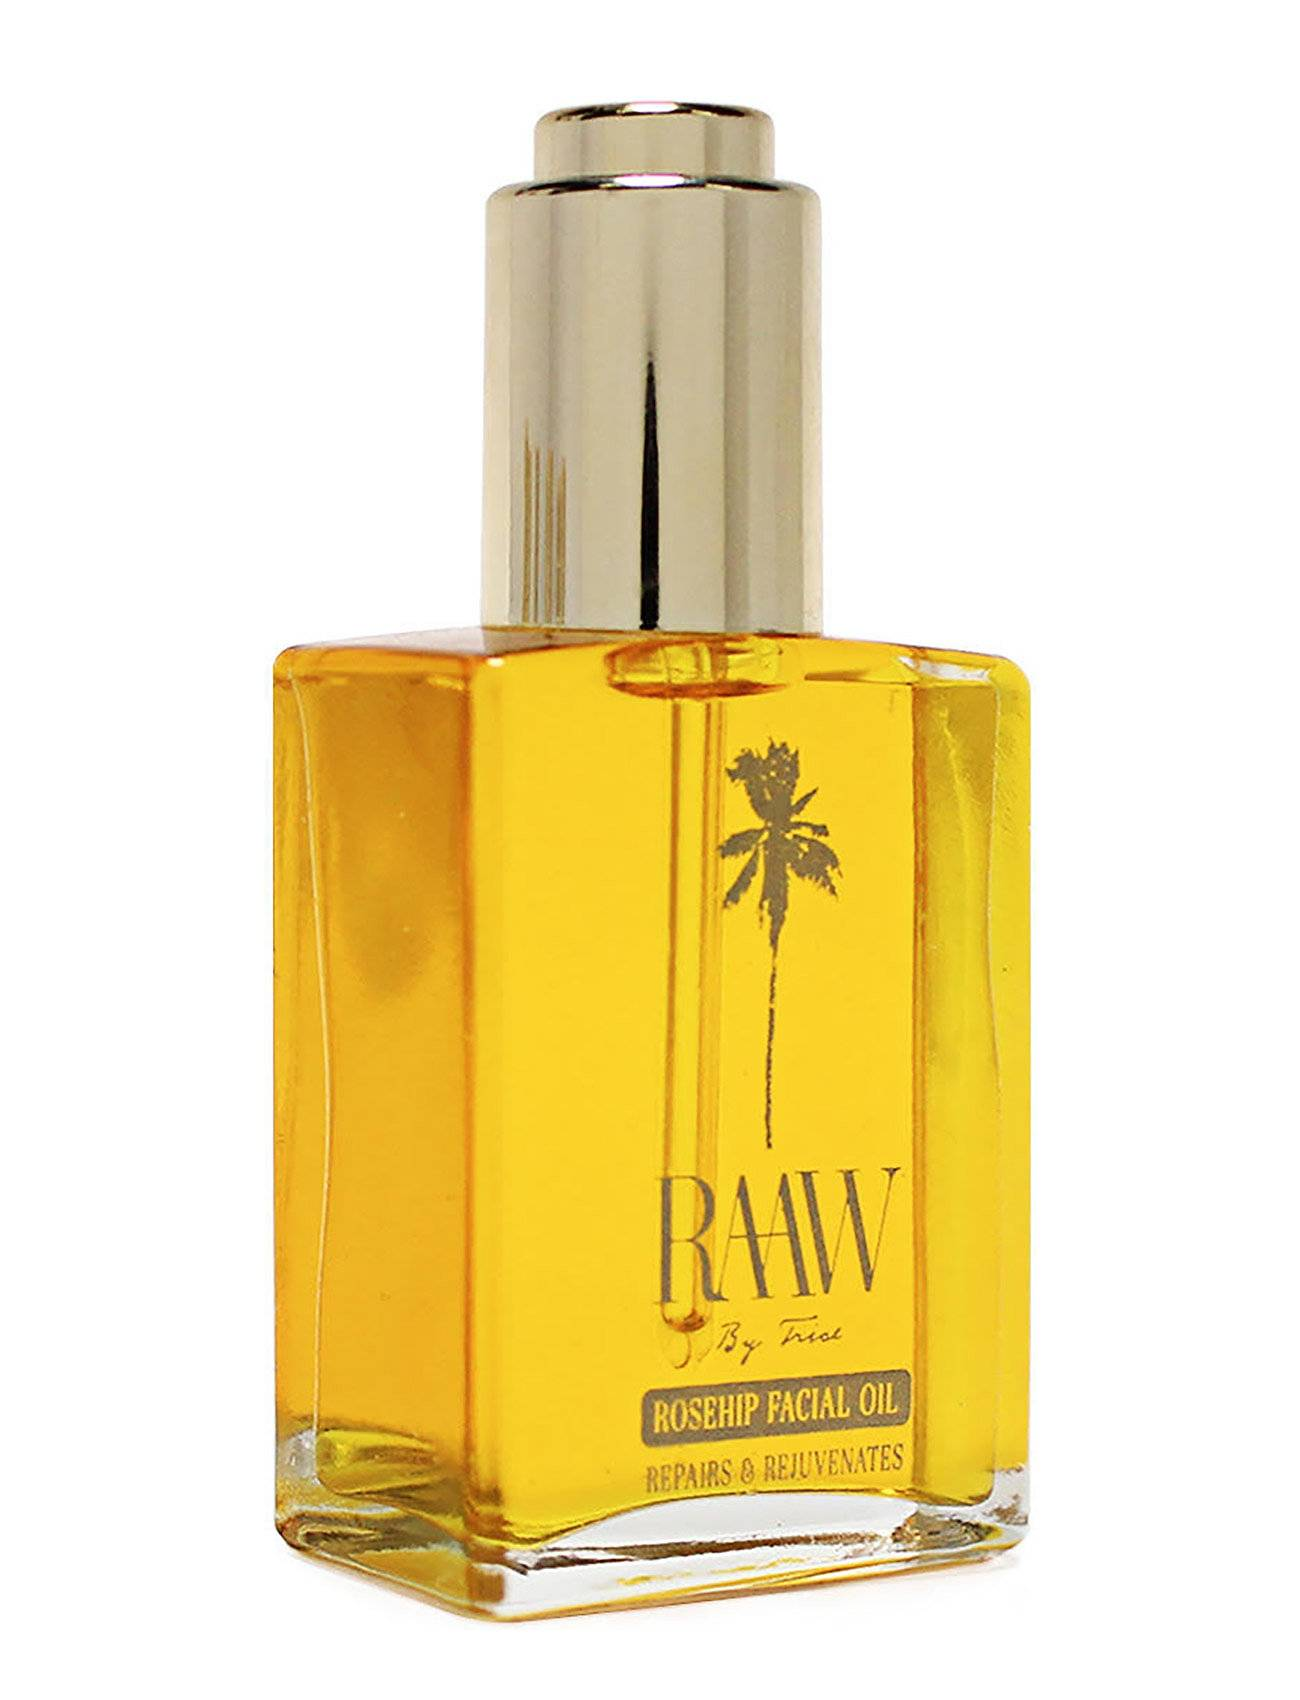 Raaw by Trice Rosehip Facial Oil